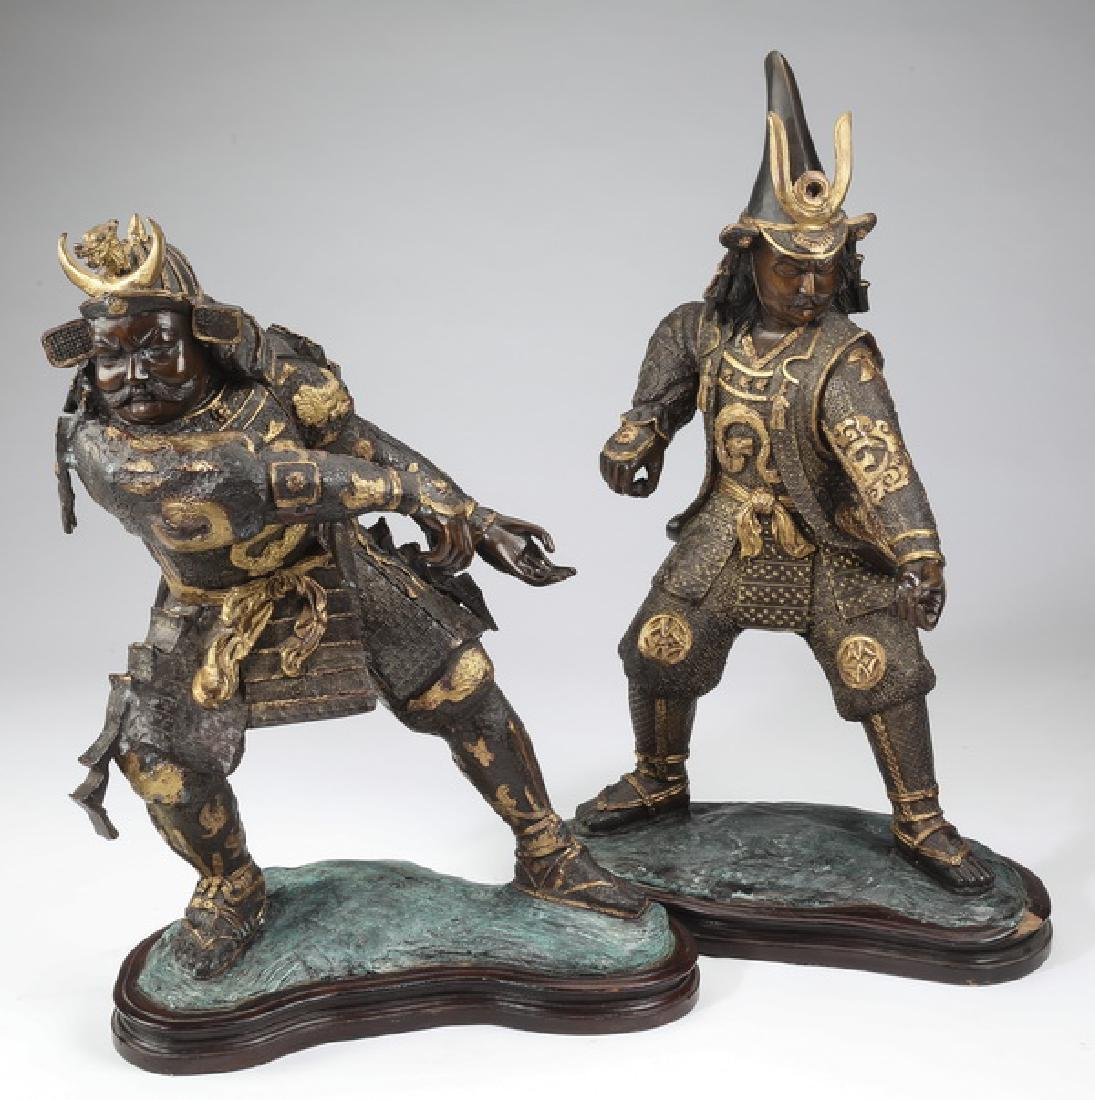 (2) Patinated metal sculptures of Japanese samurai